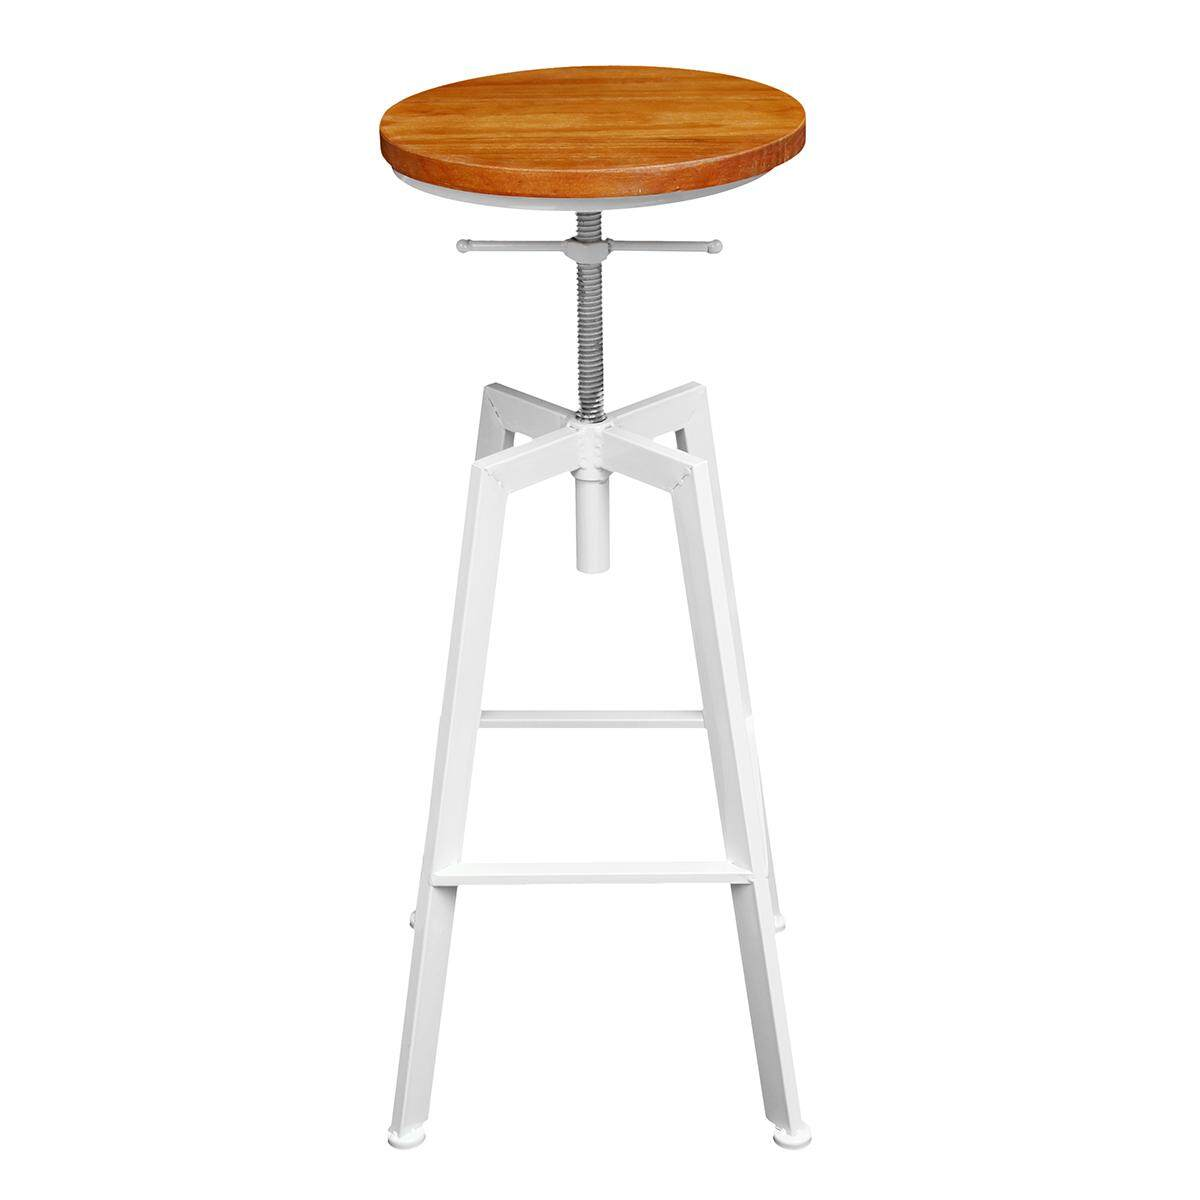 iron bar chairs solid wood bar stool retro industrial design rotating lift high chair dining White